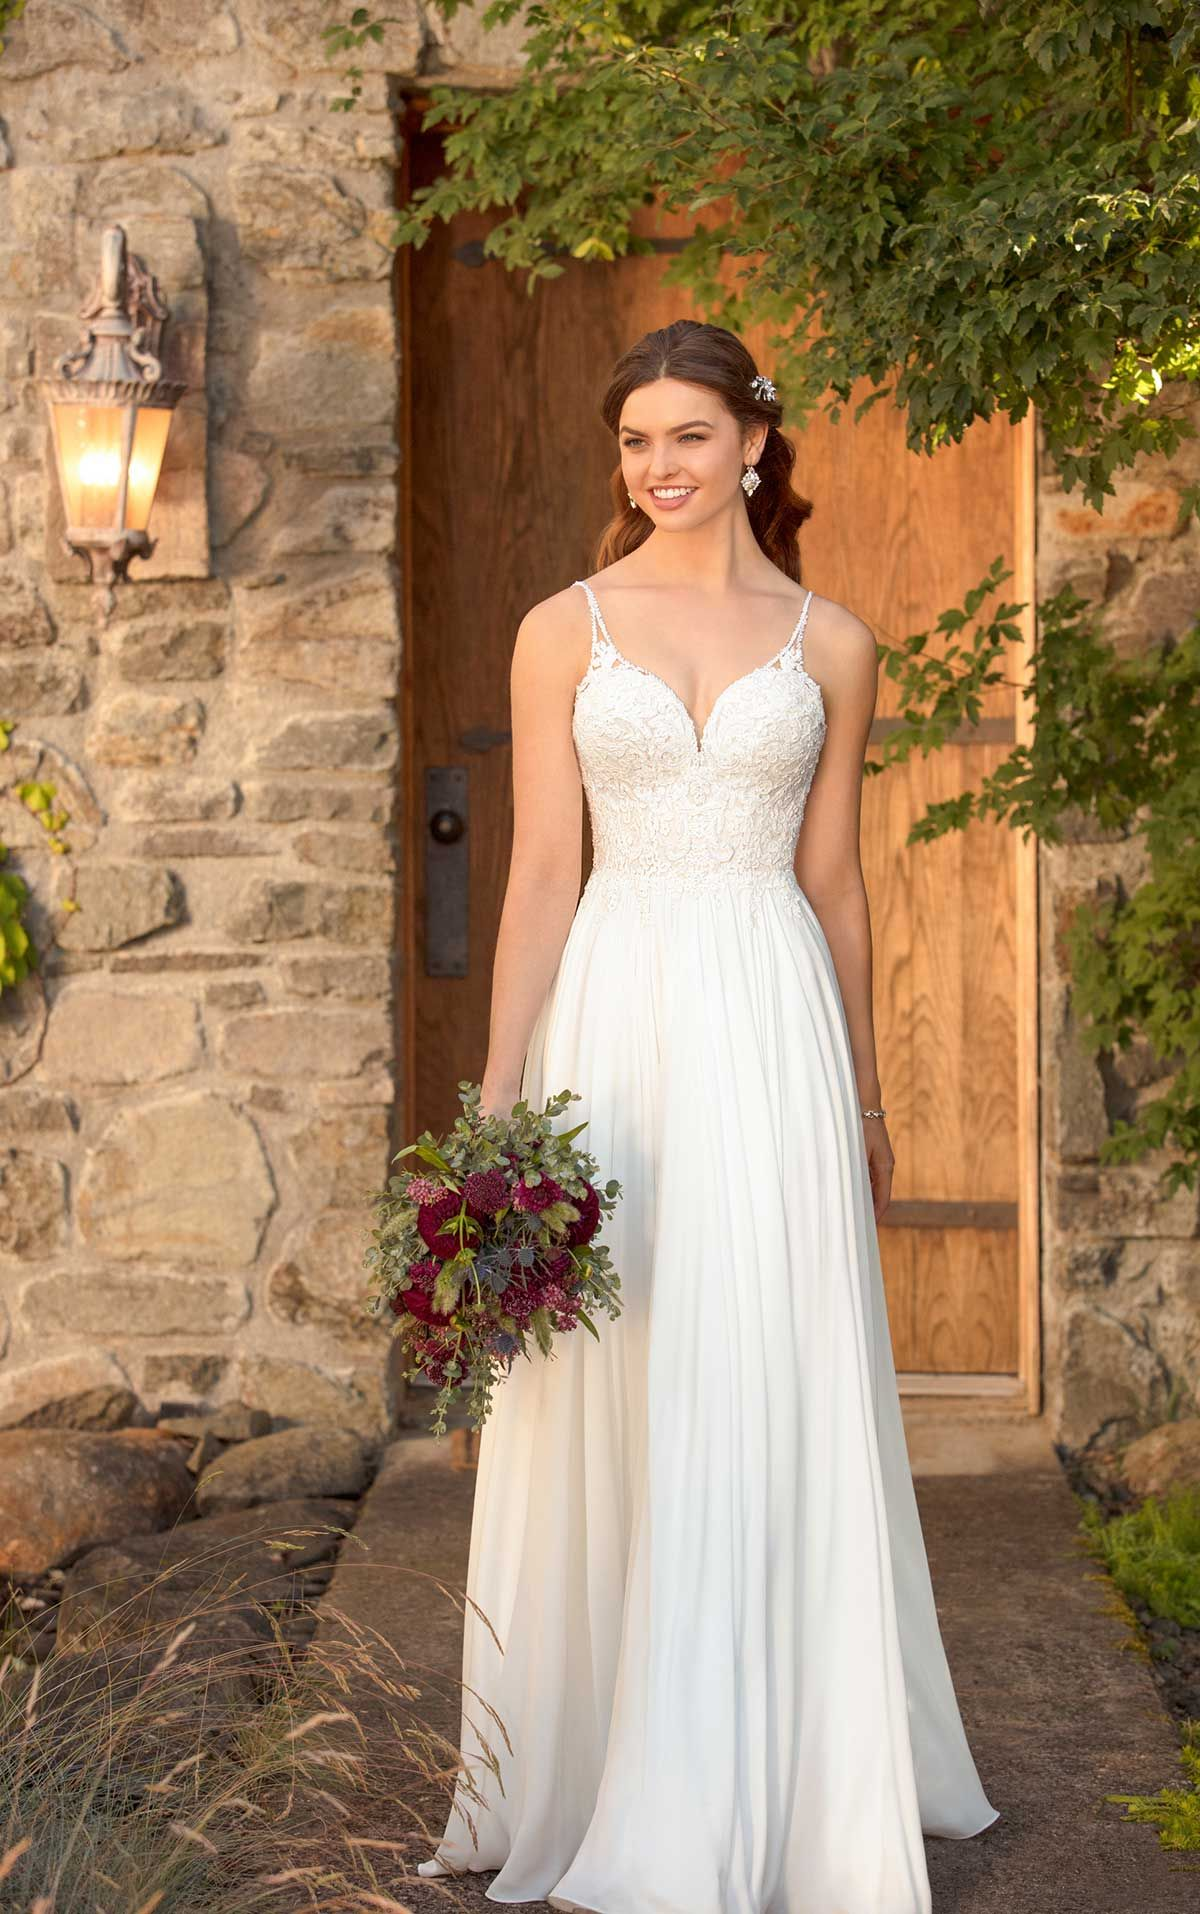 Ultimate Beach Wedding Dress Casual Beach Wedding Dress Essense Of Australia Wedding Dresses Wedding Dresses